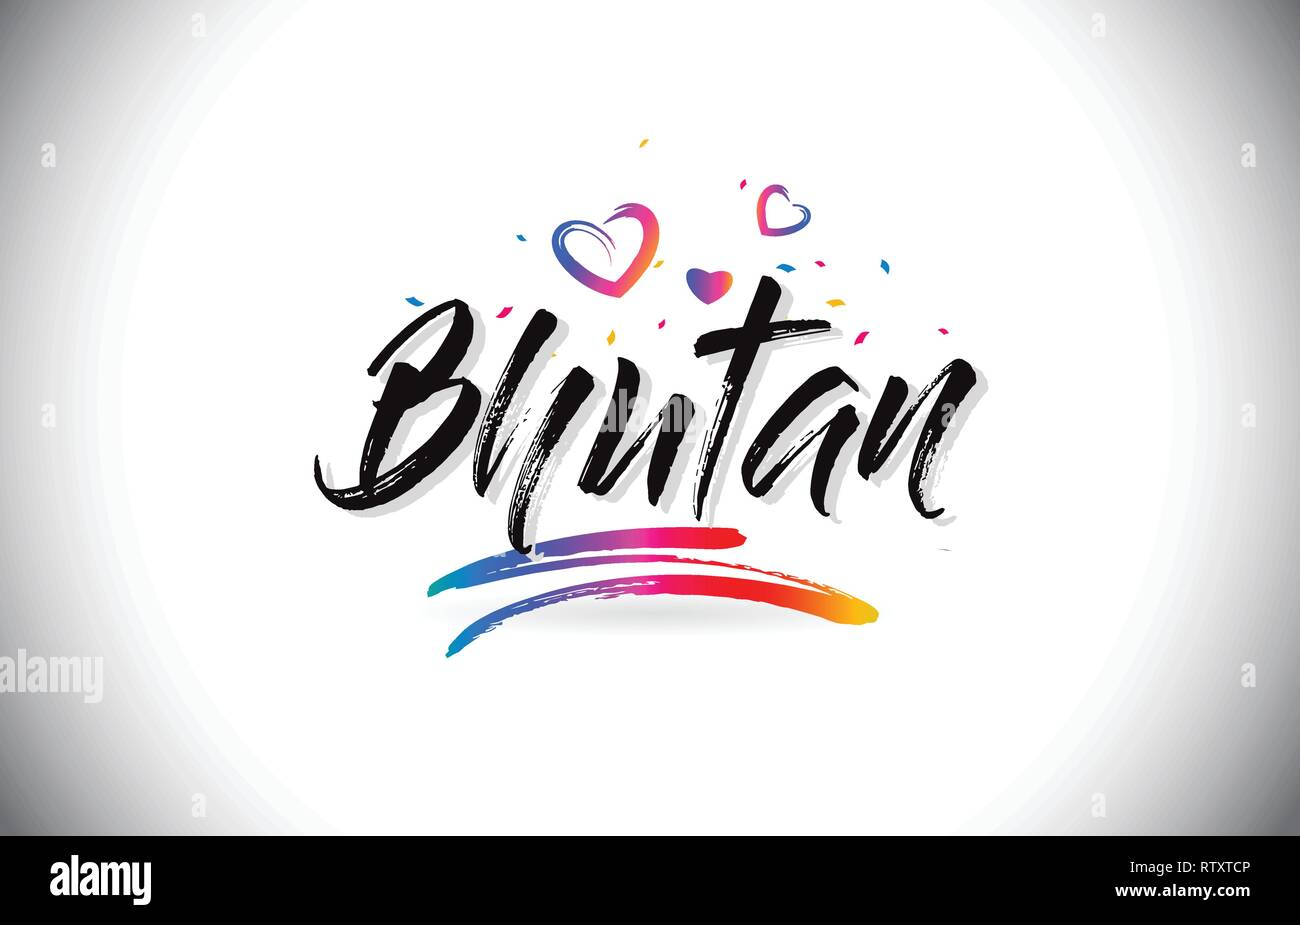 Bhutan Welcome To Word Text with Love Hearts and Creative Handwritten Font Design Vector Illustration. - Stock Vector